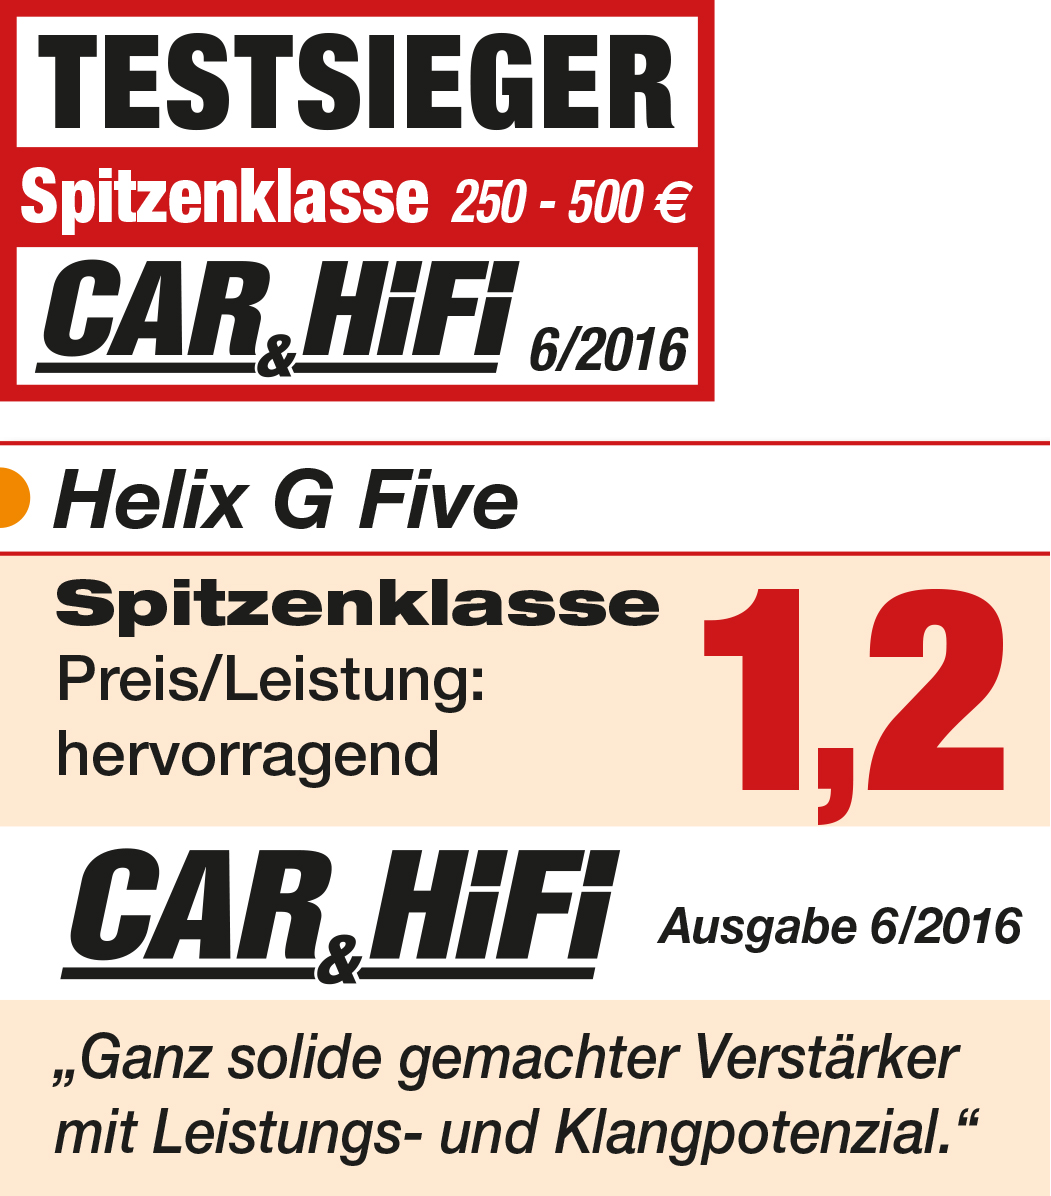 2016-06-Car-Hifi-Bewertung-HELIX-G-FIVE